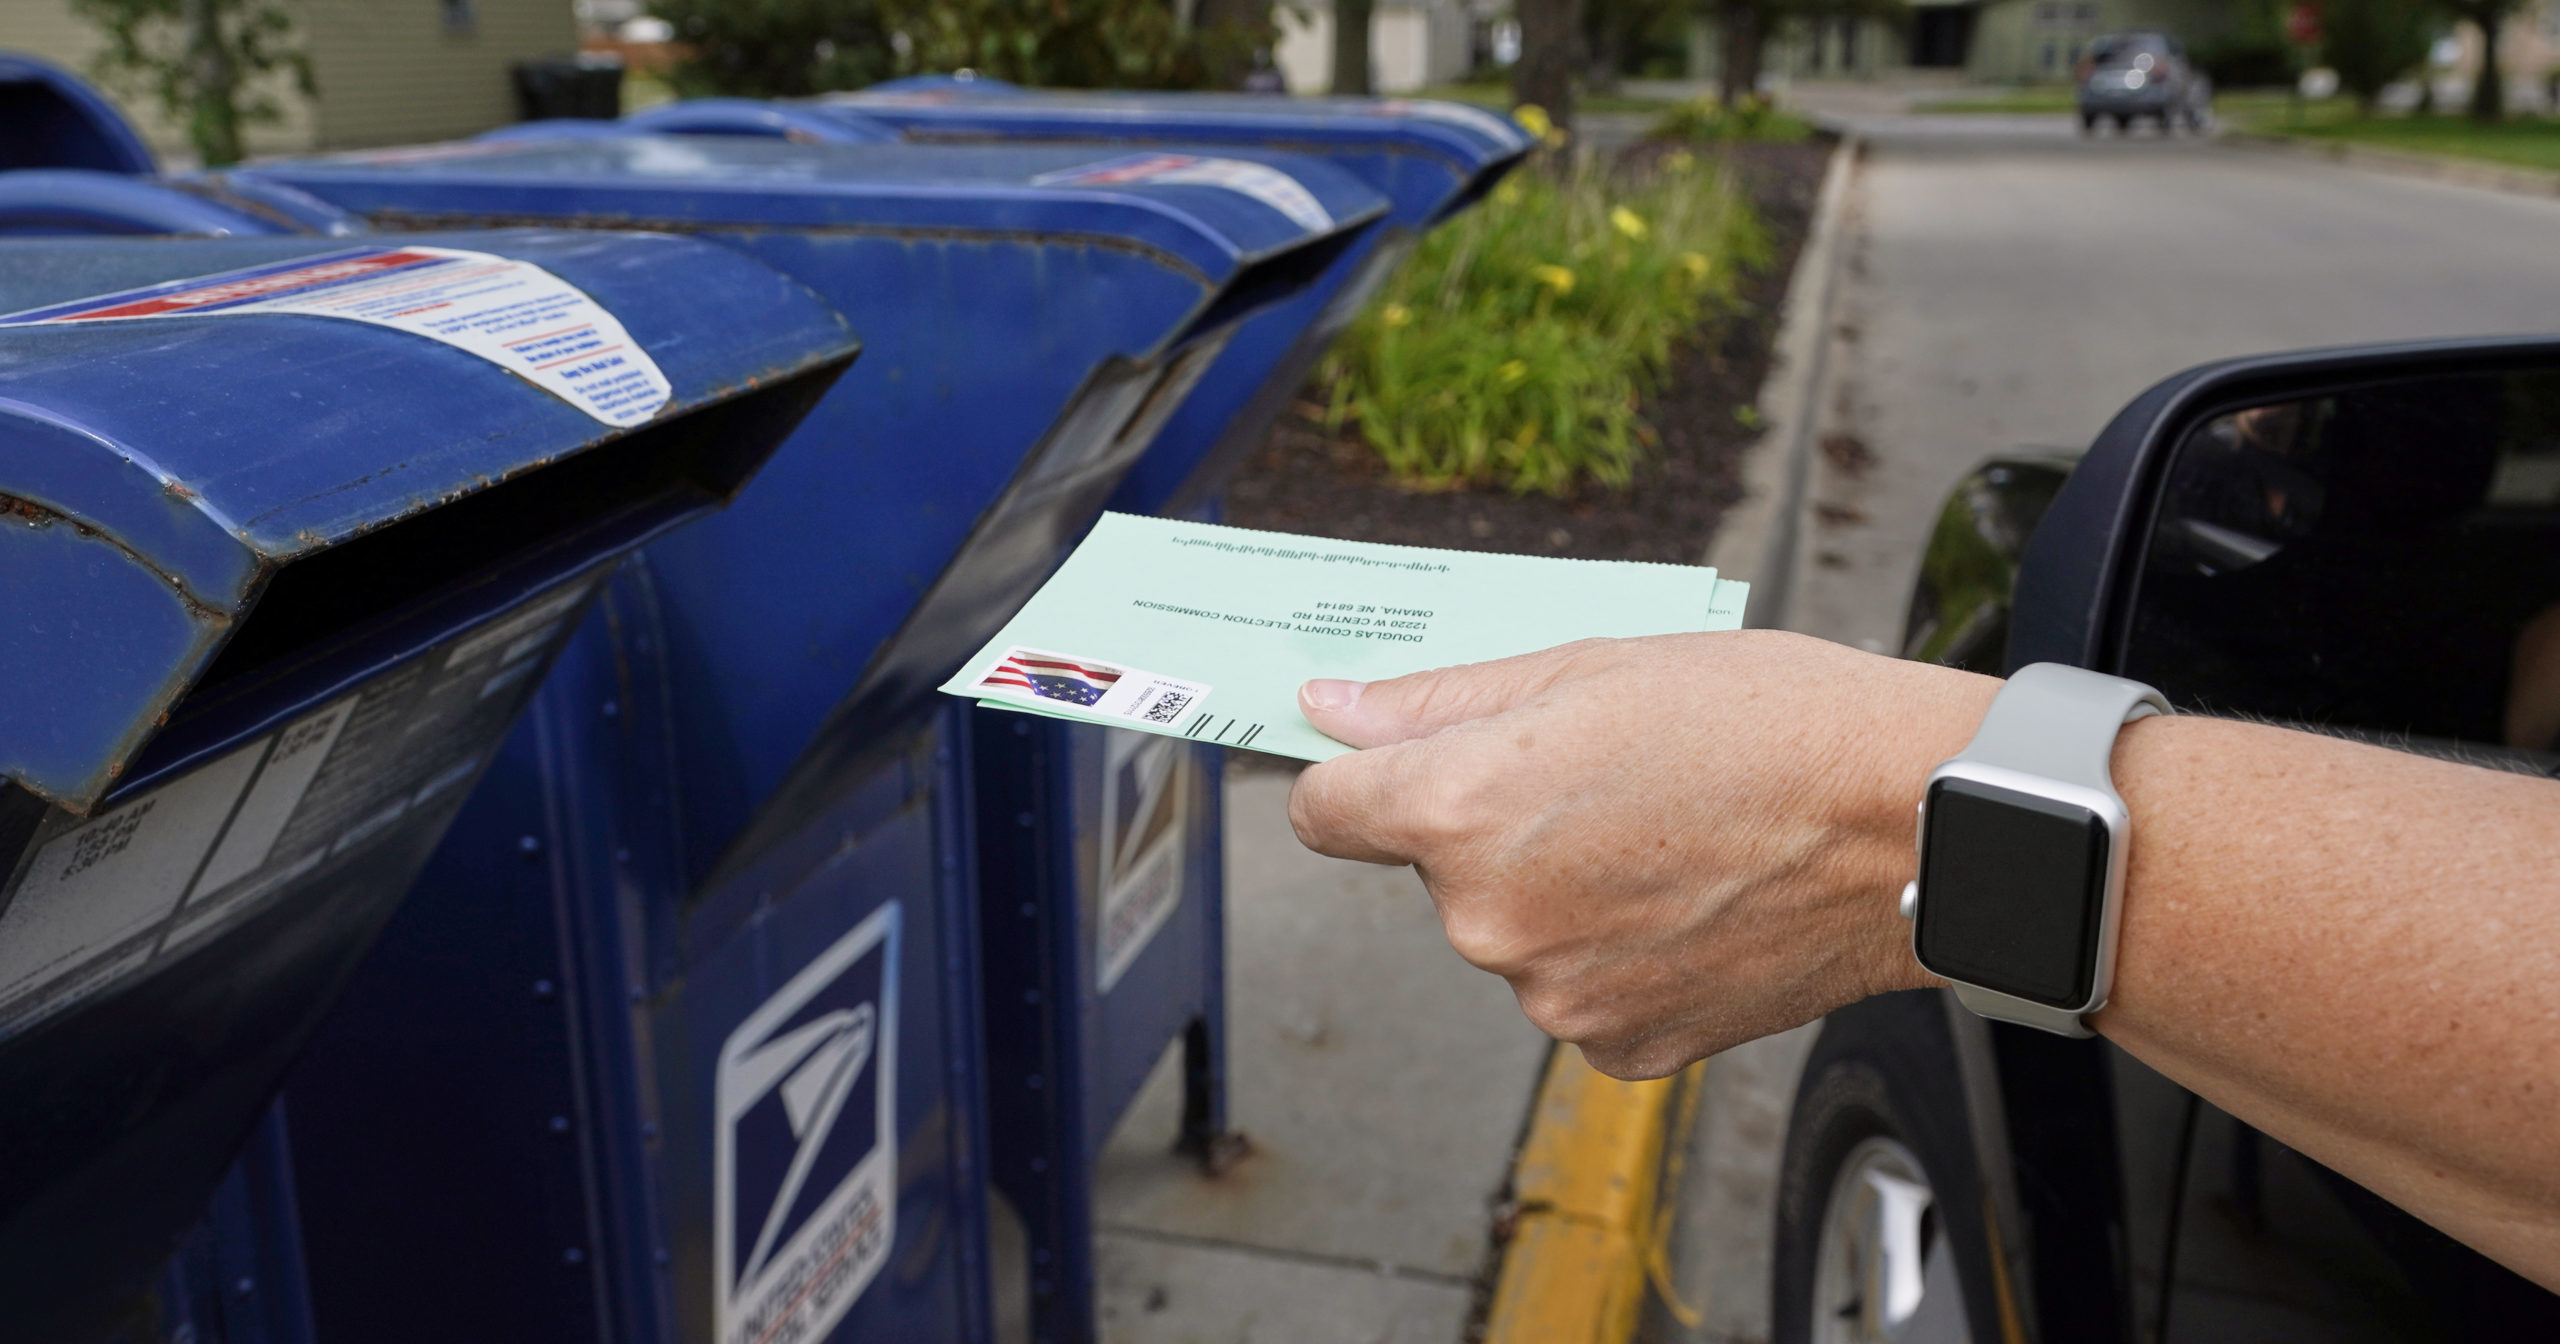 In this Aug. 18, 2020, file photo, a person drops applications for mail-in ballots into a mailbox in Omaha, Nebraska.